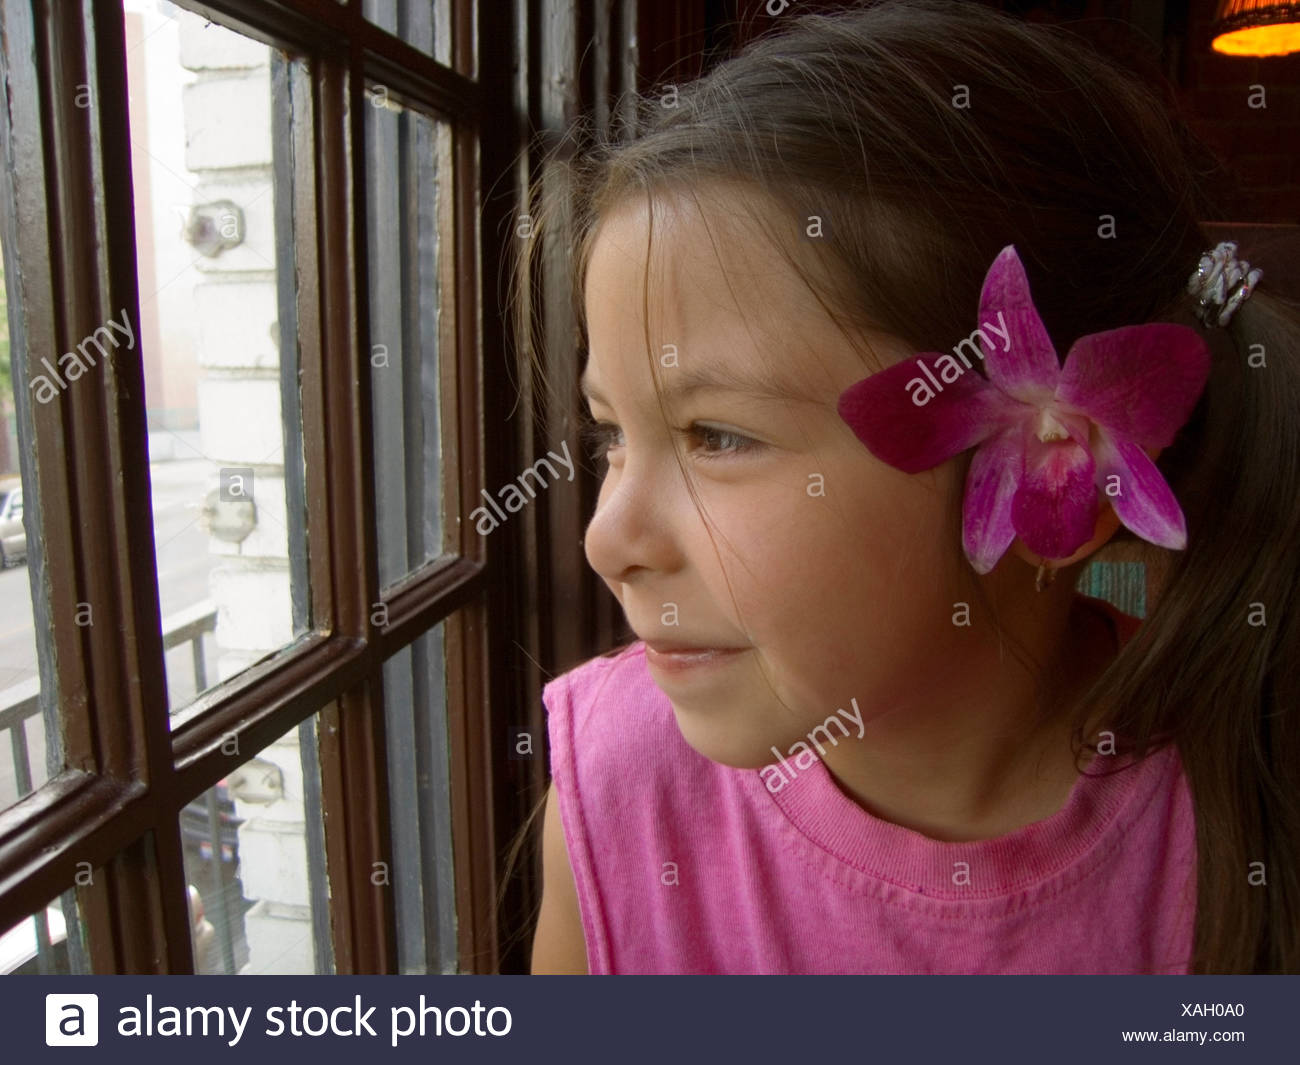 Flower behind ear stock photos flower behind ear stock images alamy close up of young girl with flower behind ear gazing out a window boise id izmirmasajfo